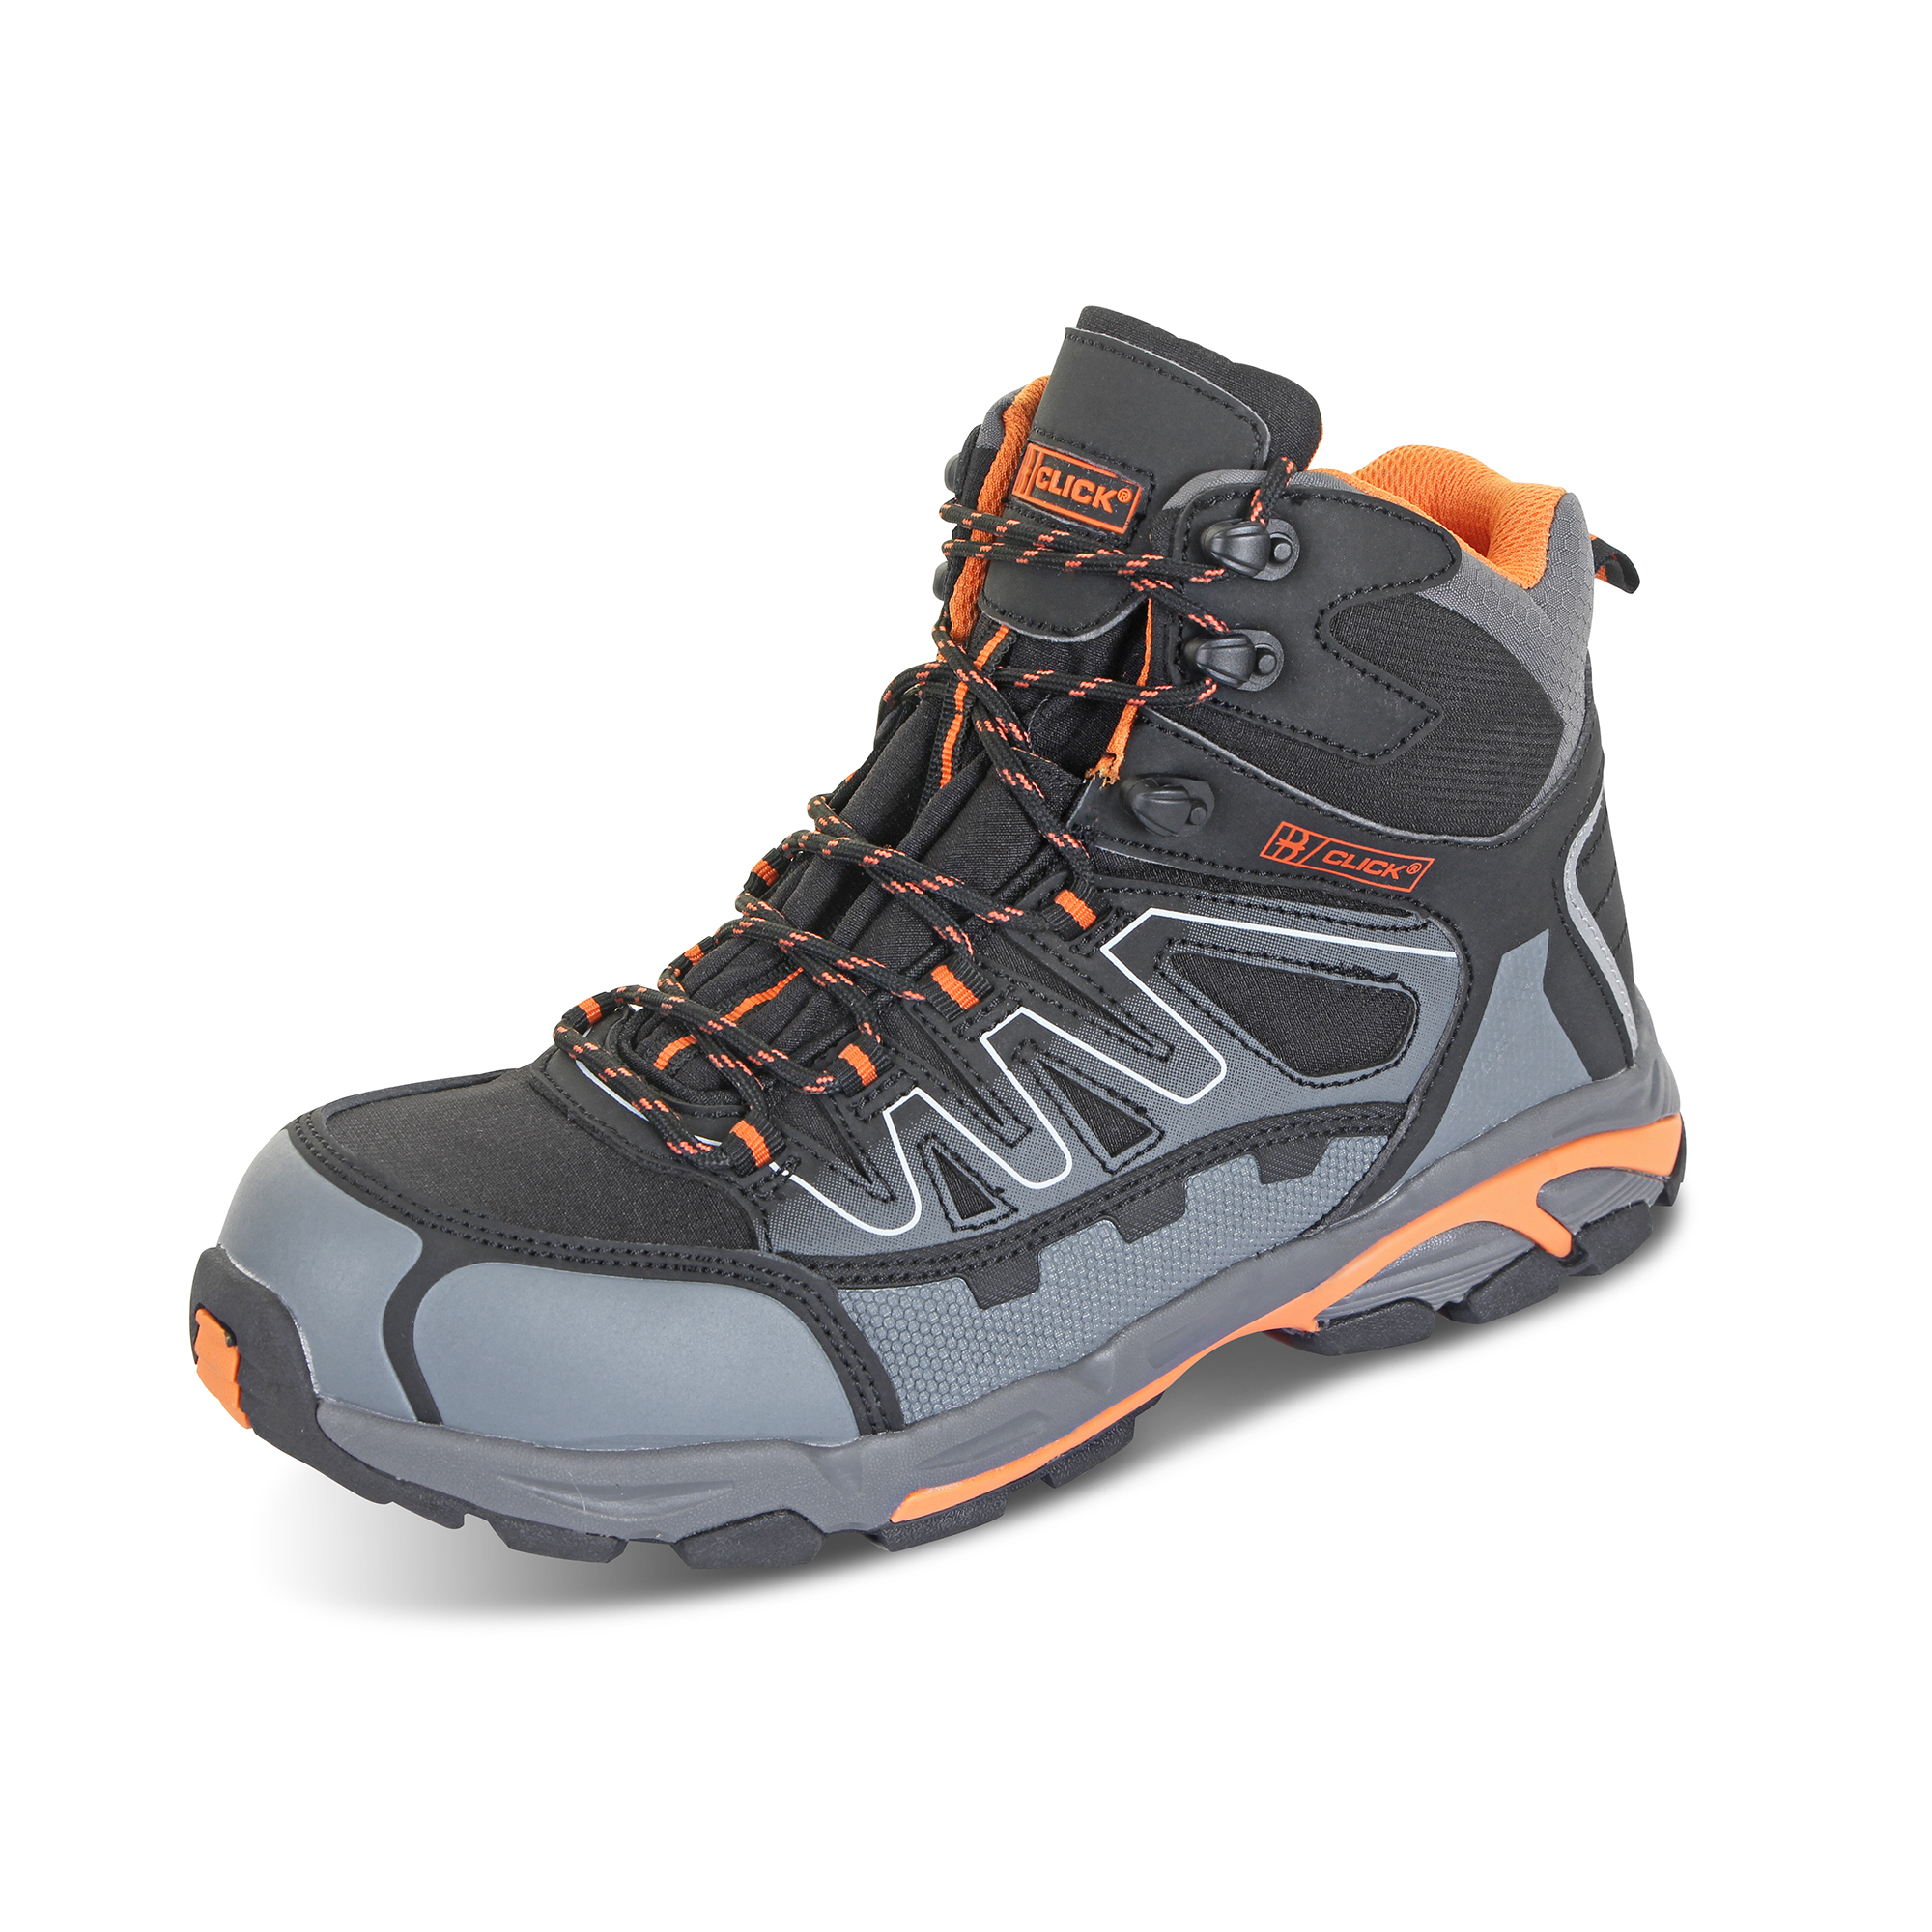 Limitless Click Footwear Leather S3 Hiker Boot Composite Toe Size 10.5 Blk/Grey Ref CF3510.5 *Up to 3 Day Leadtime*